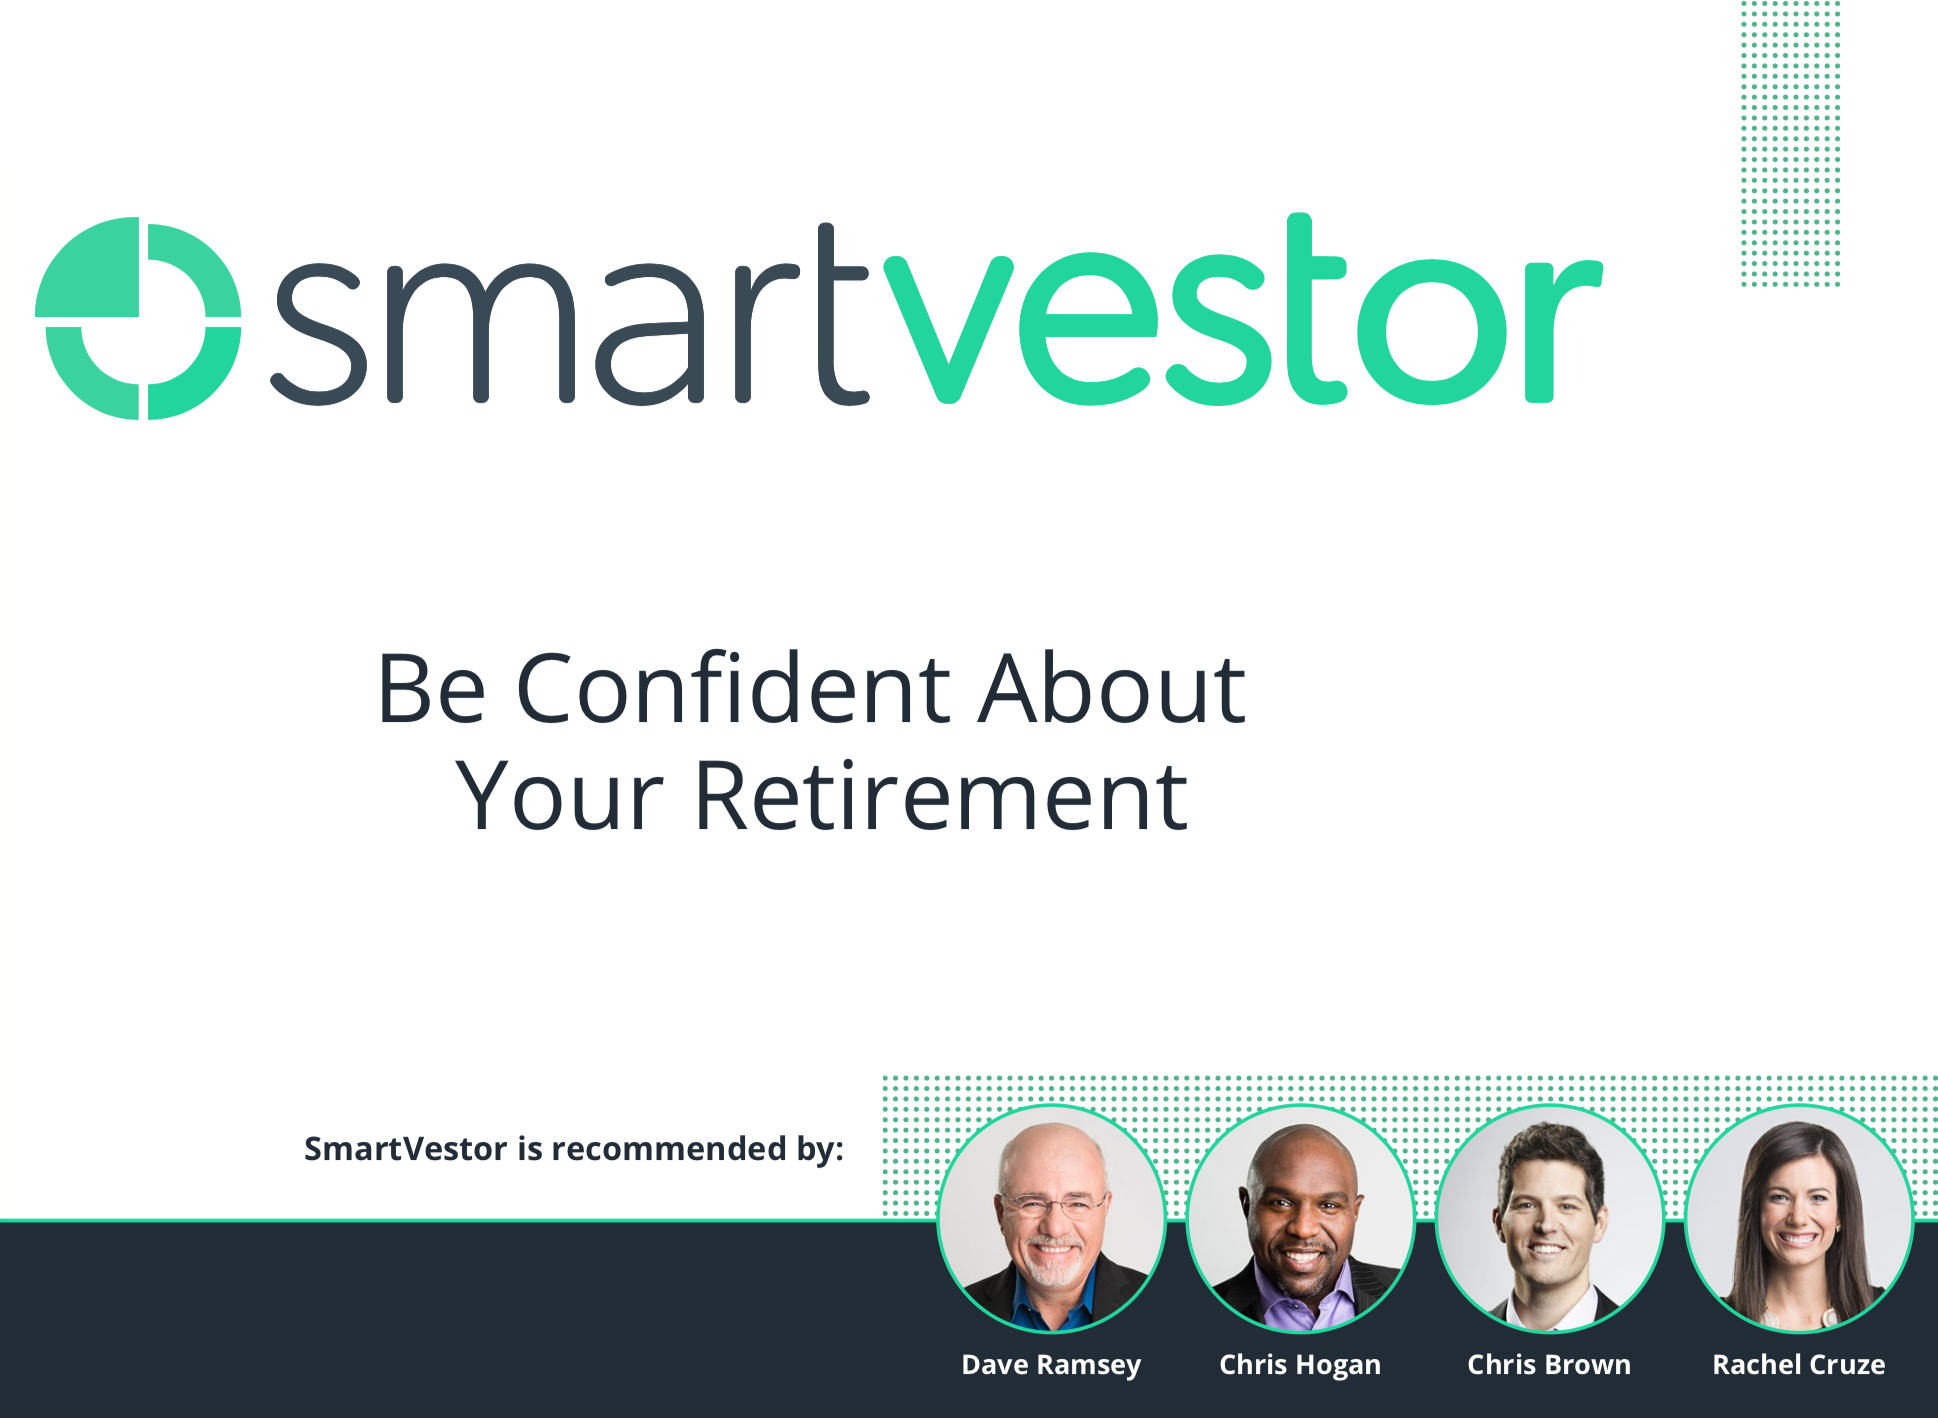 Connect with a Dave Ramsey SmartVestor in The Woodlands